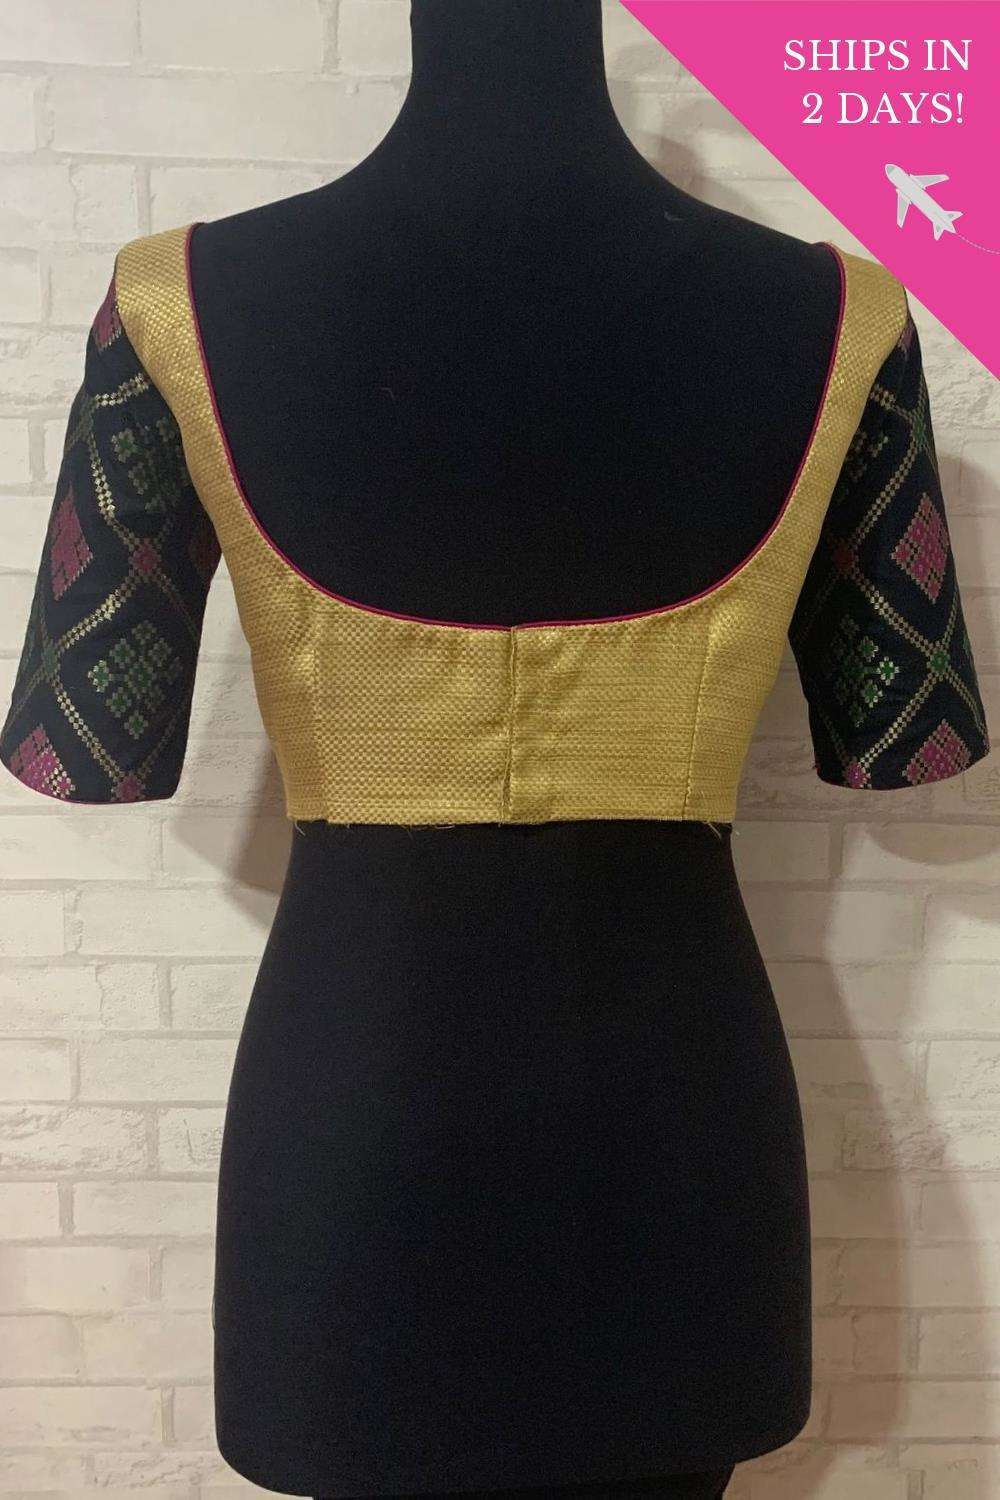 Gold brocade blouse with black brocade sleeves; Size: 40 - House of Blouse